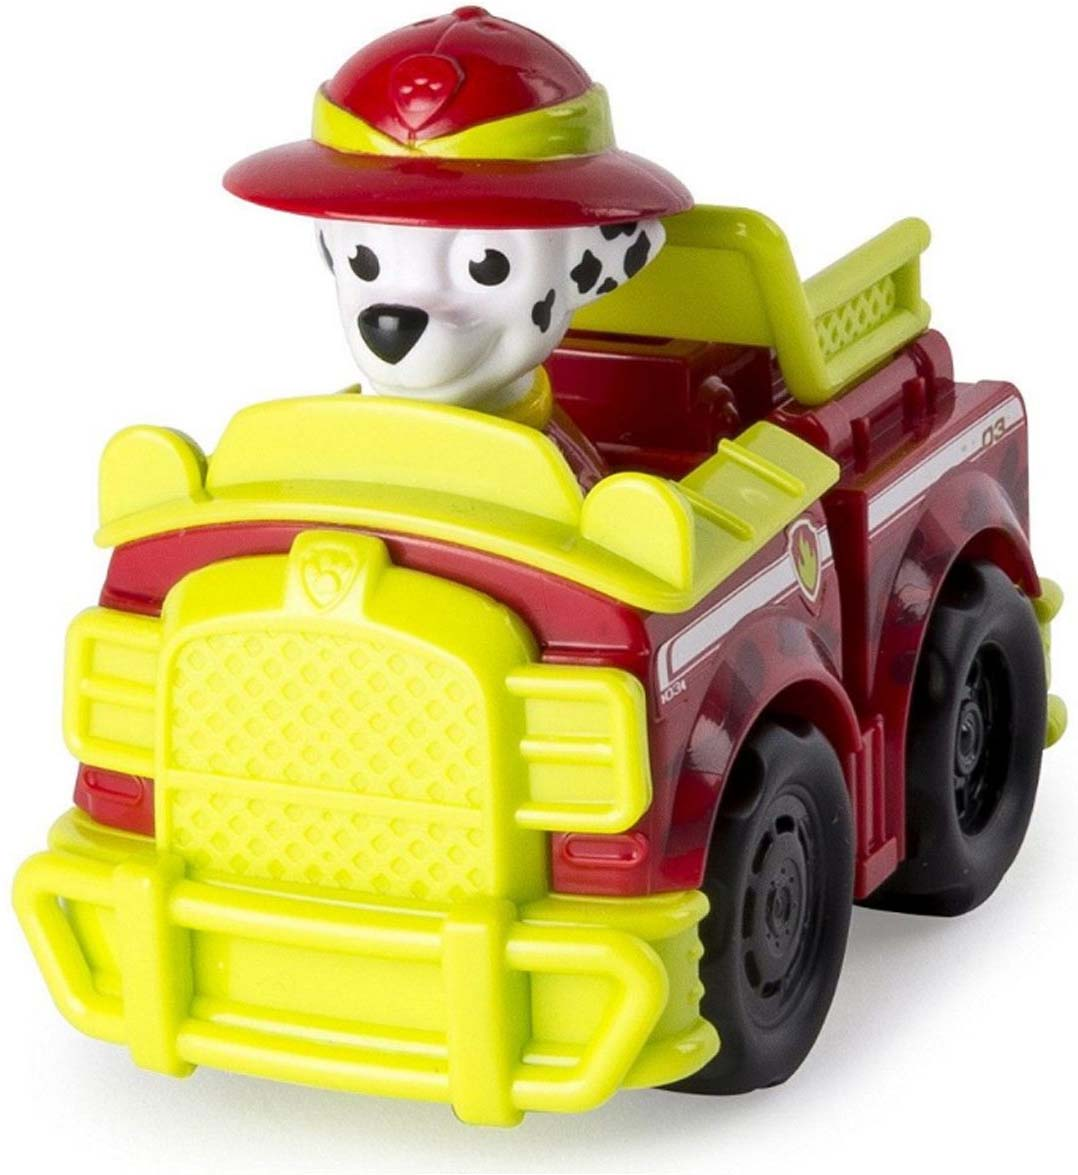 Paw Patrol Машина спасателя Chase 16605_20088407 20cm canine patrol dog toys russian anime doll action figures car patrol puppy toy patrulla canina juguetes gift for child m134